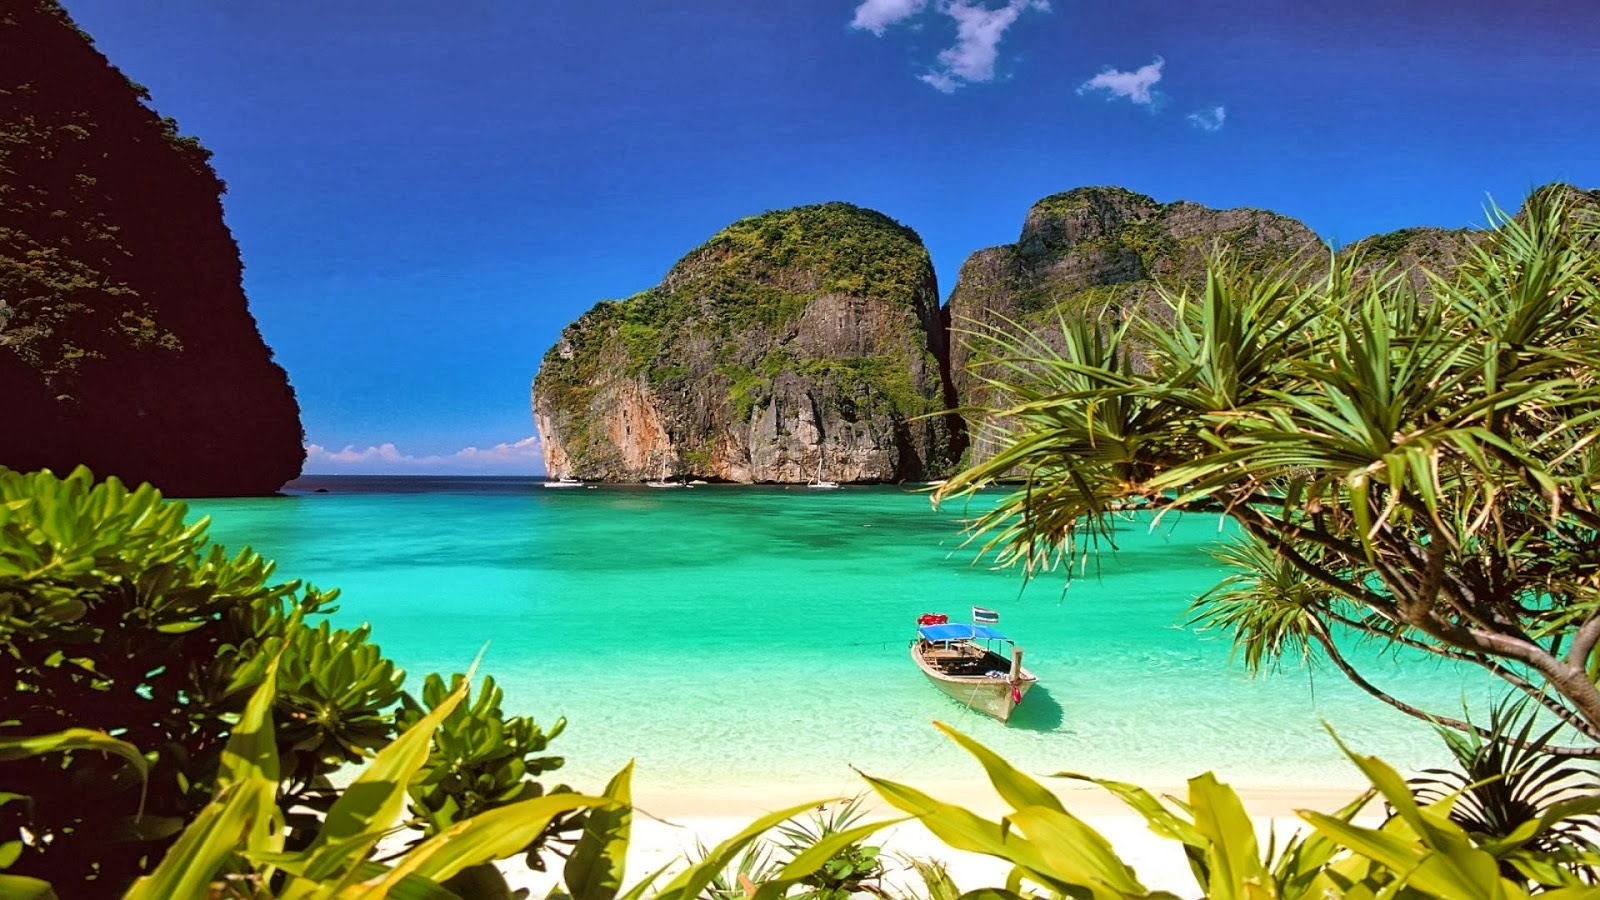 Hd Tropical Island Beach Paradise Wallpapers And Backgrounds: Thailand Beach Wallpaper